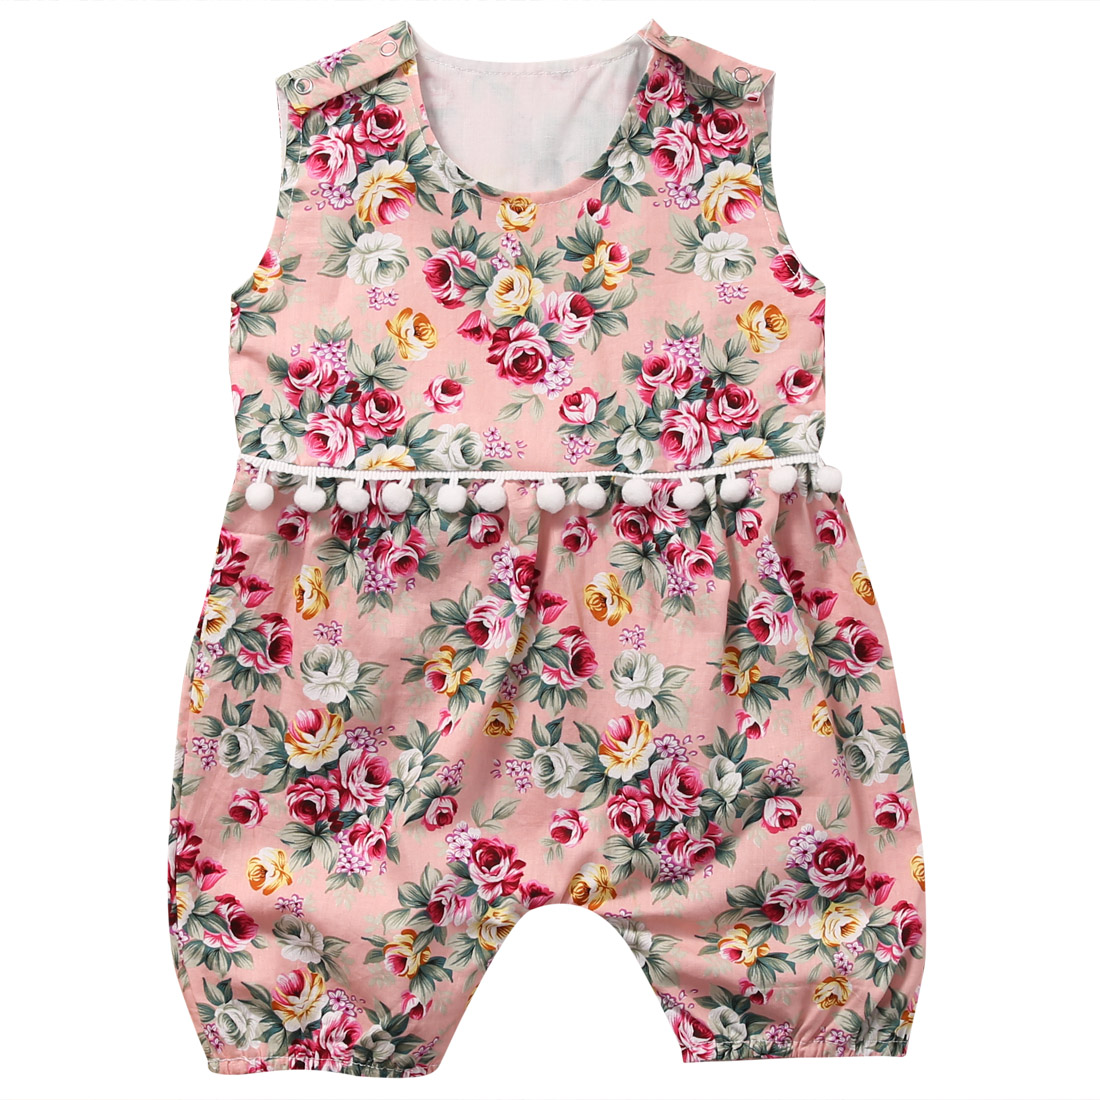 Summer Newborn Baby Girls Floral Romper Sleeveless Flower Tassels Rompers Jumpsuit Sunsuit Clothes Infant Clothing 0-18M newborn baby backless floral jumpsuit infant girls romper sleeveless outfit